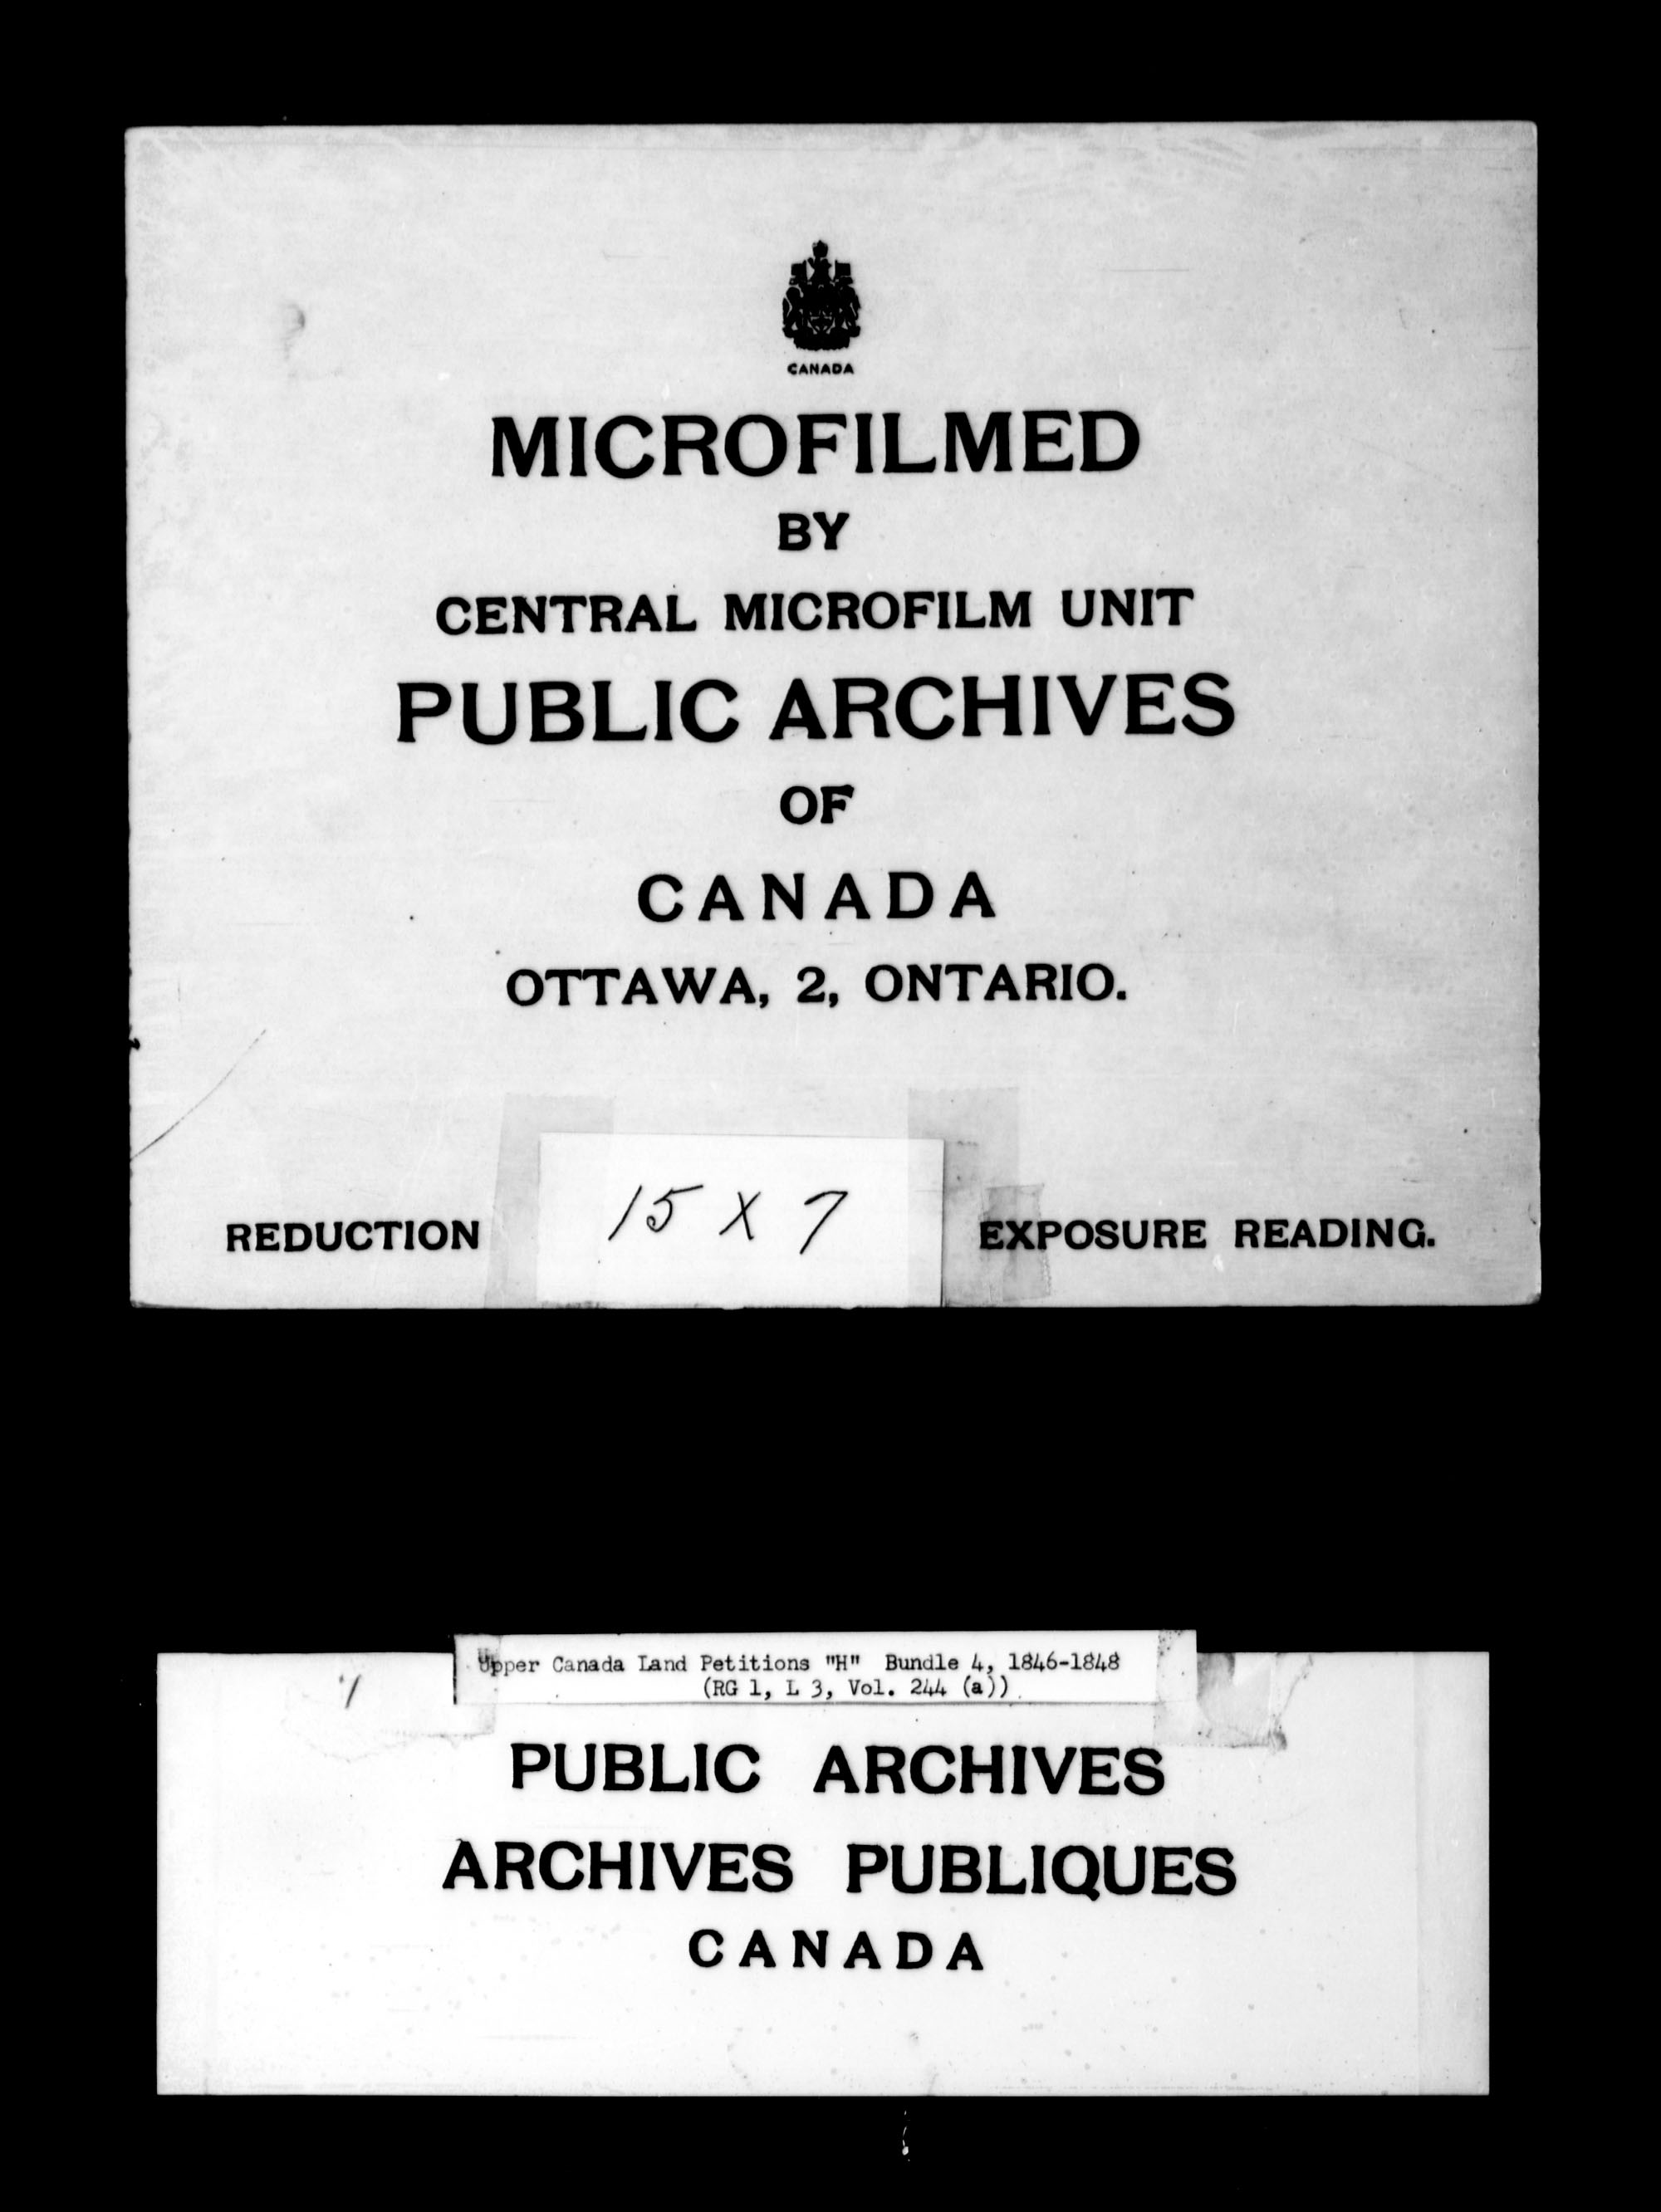 Title: Upper Canada Land Petitions (1763-1865) - Mikan Number: 205131 - Microform: c-2100